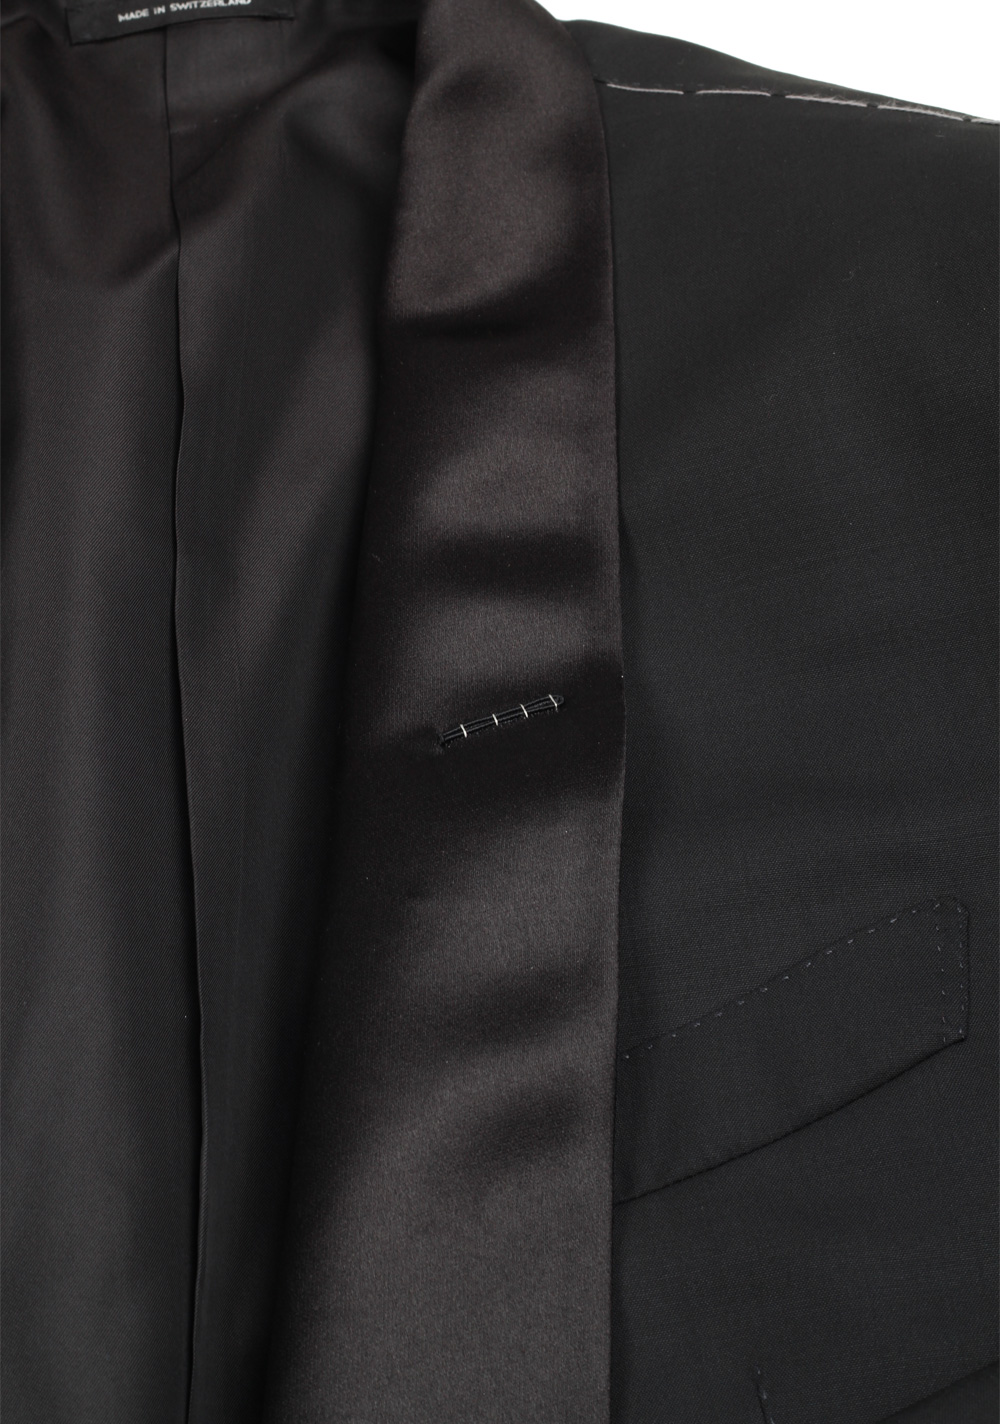 TOM FORD O'Connor Black Shawl Collar Tuxedo Smoking Suit Size 46 / 36R U.S. Fit Y | Costume Limité